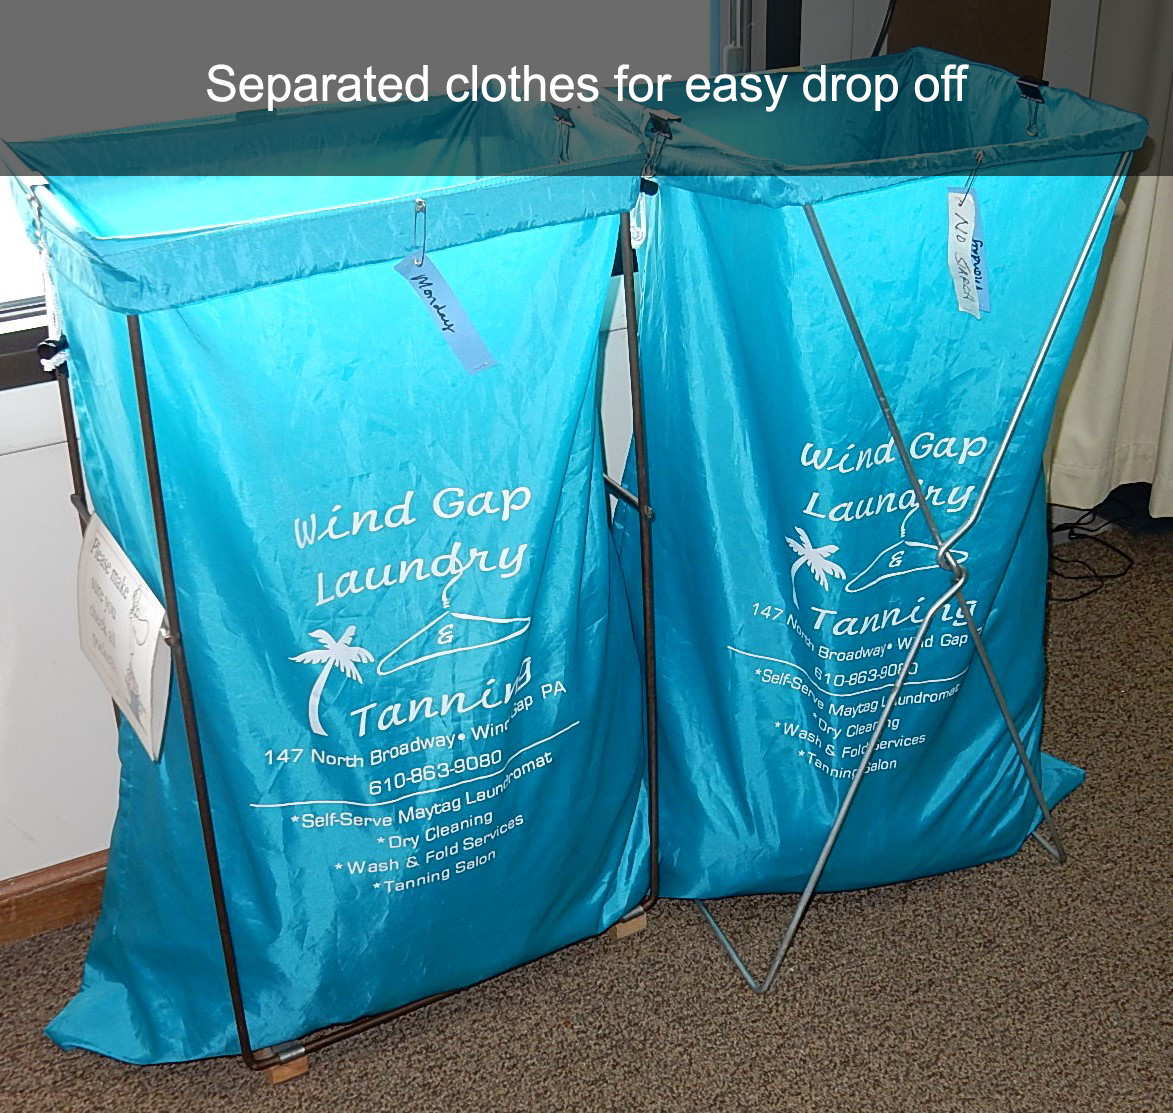 Separated clothes for easy drop off